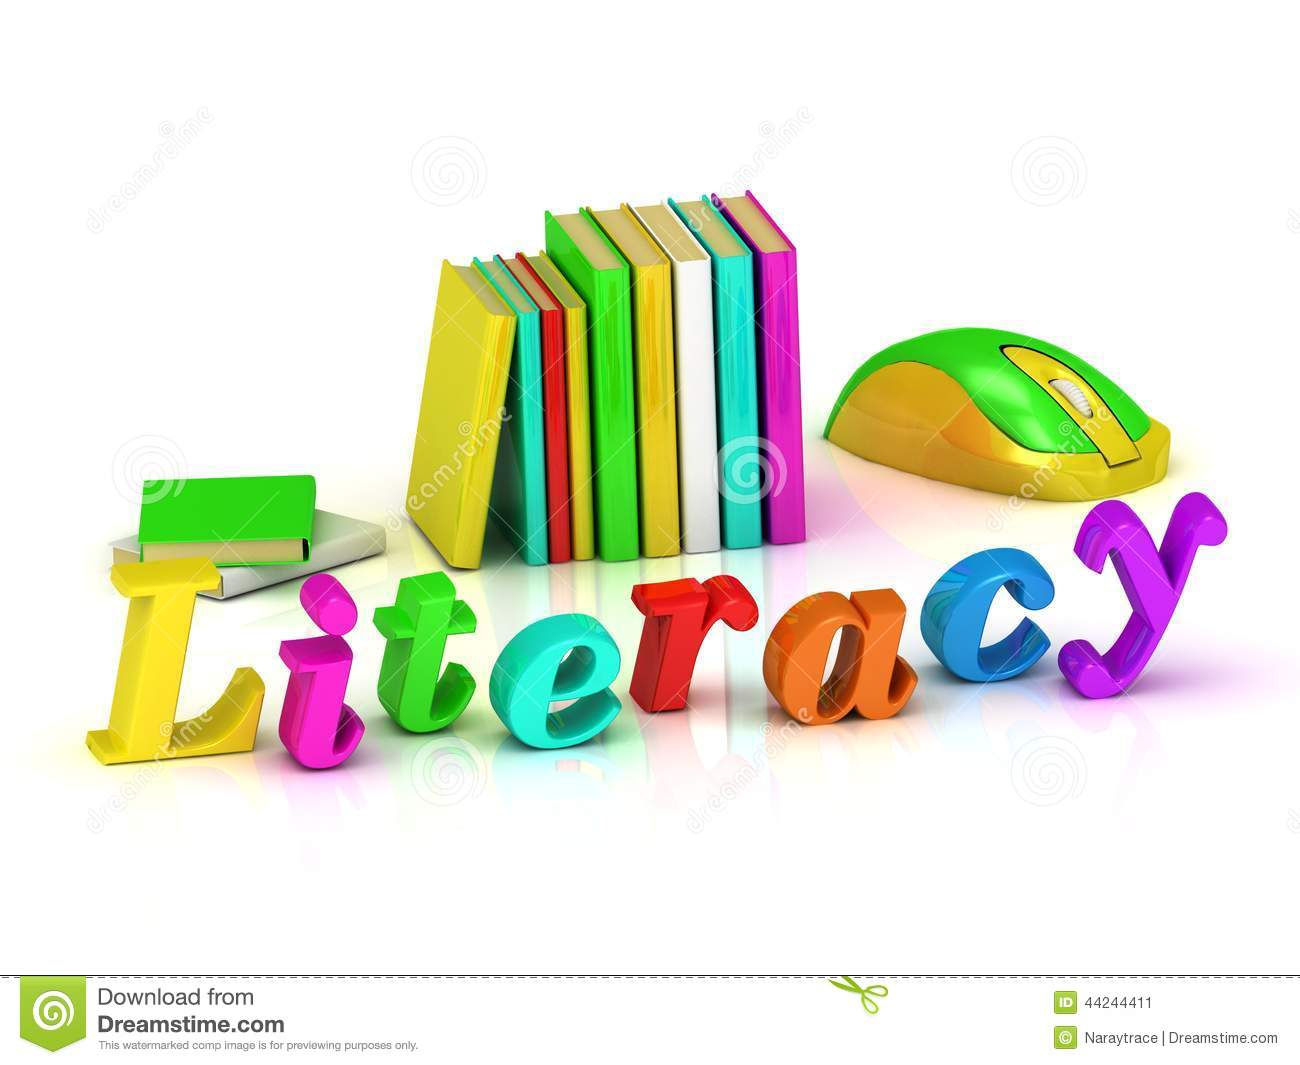 677 Literacy free clipart.